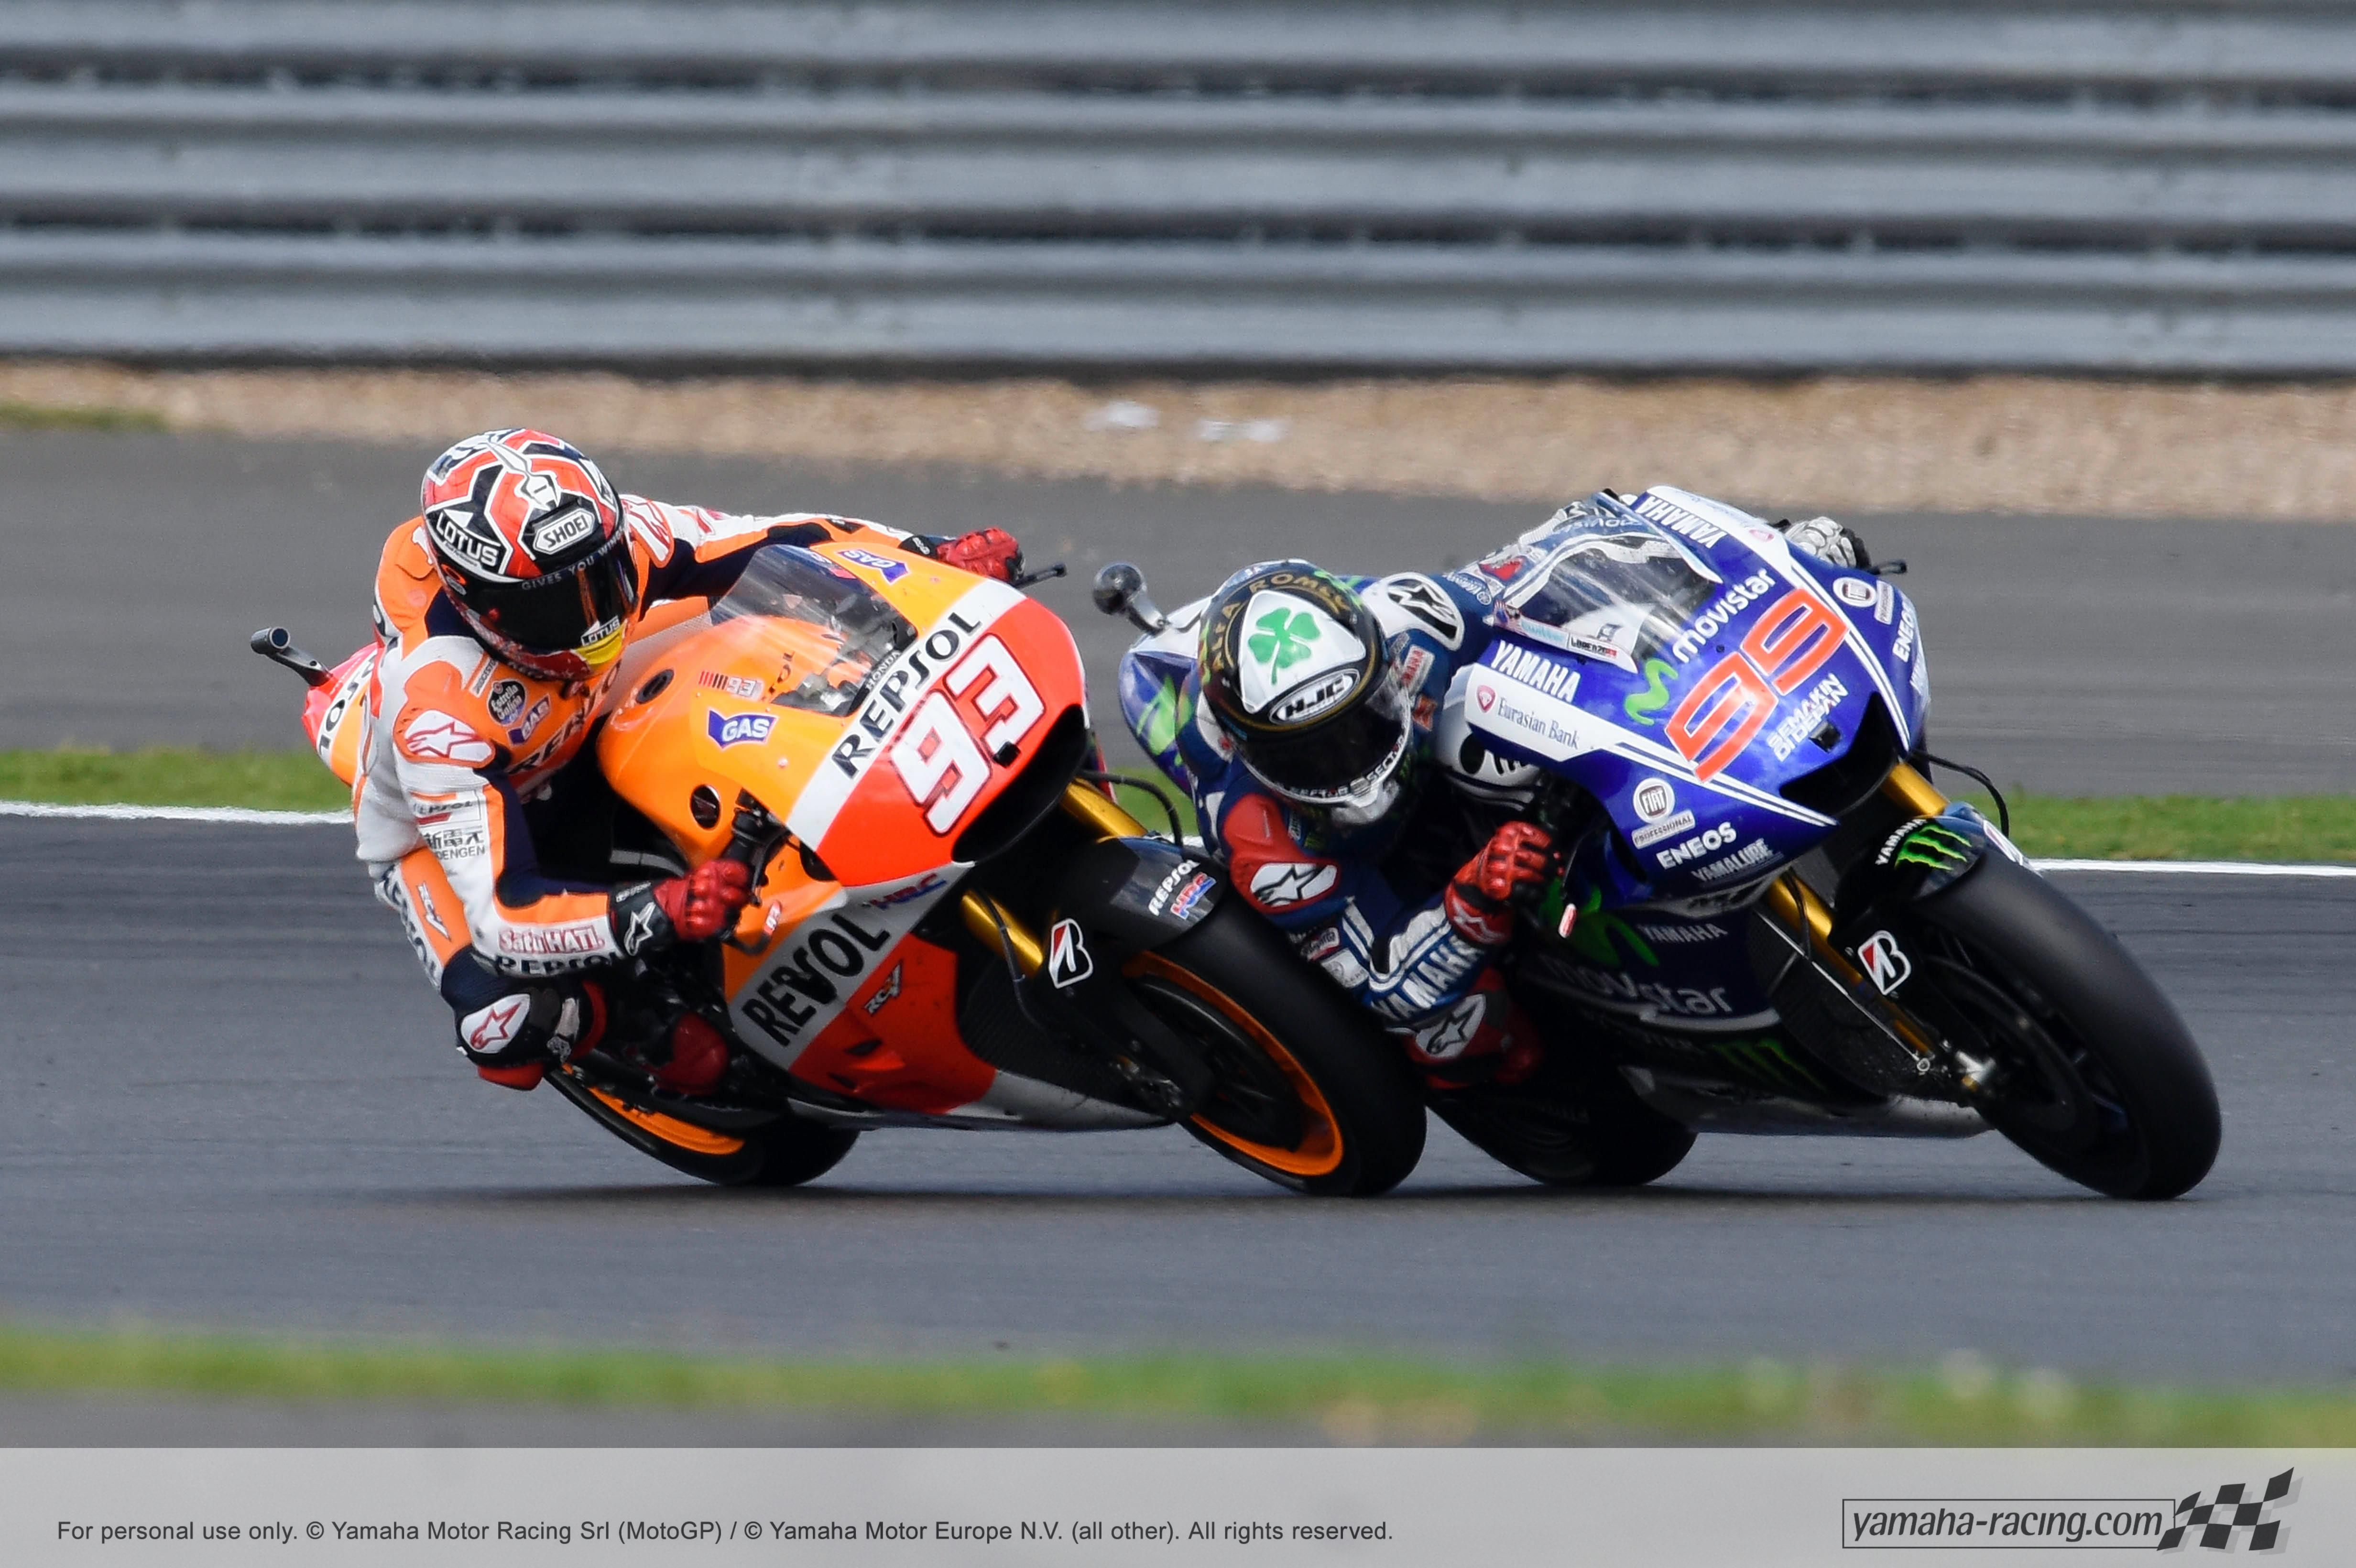 That Ll Leave A Mark Lorenzo And Marquez Fighting For First Place At Silverstone Motogp Racing British Grand Prix